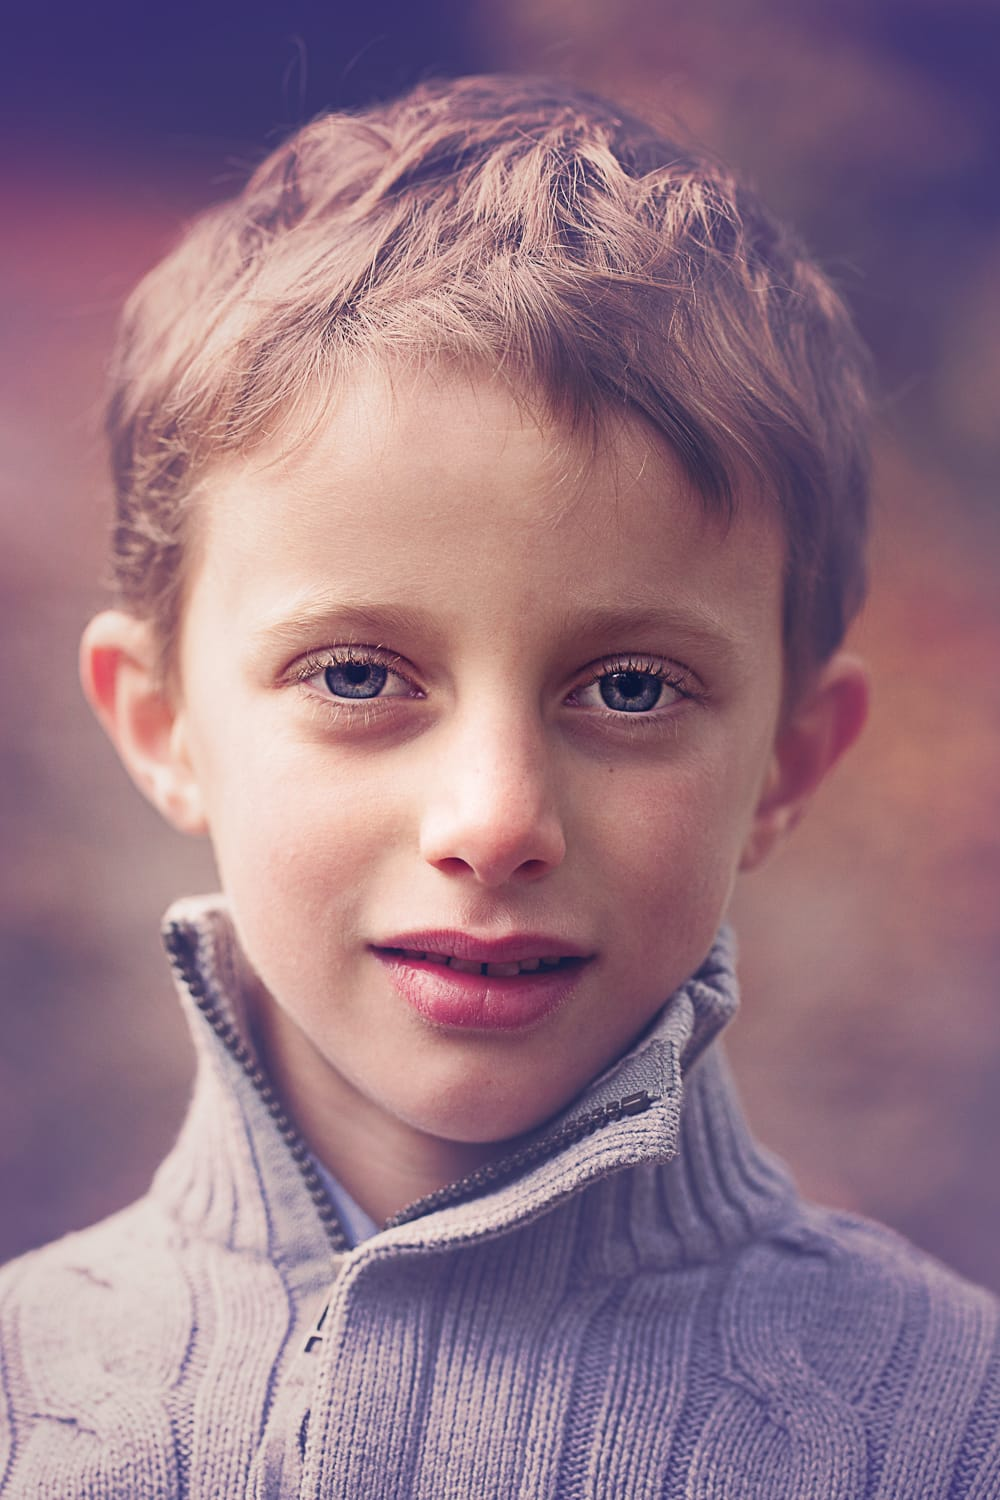 Child Portrait Photographer Sussex by Mimi VP-3